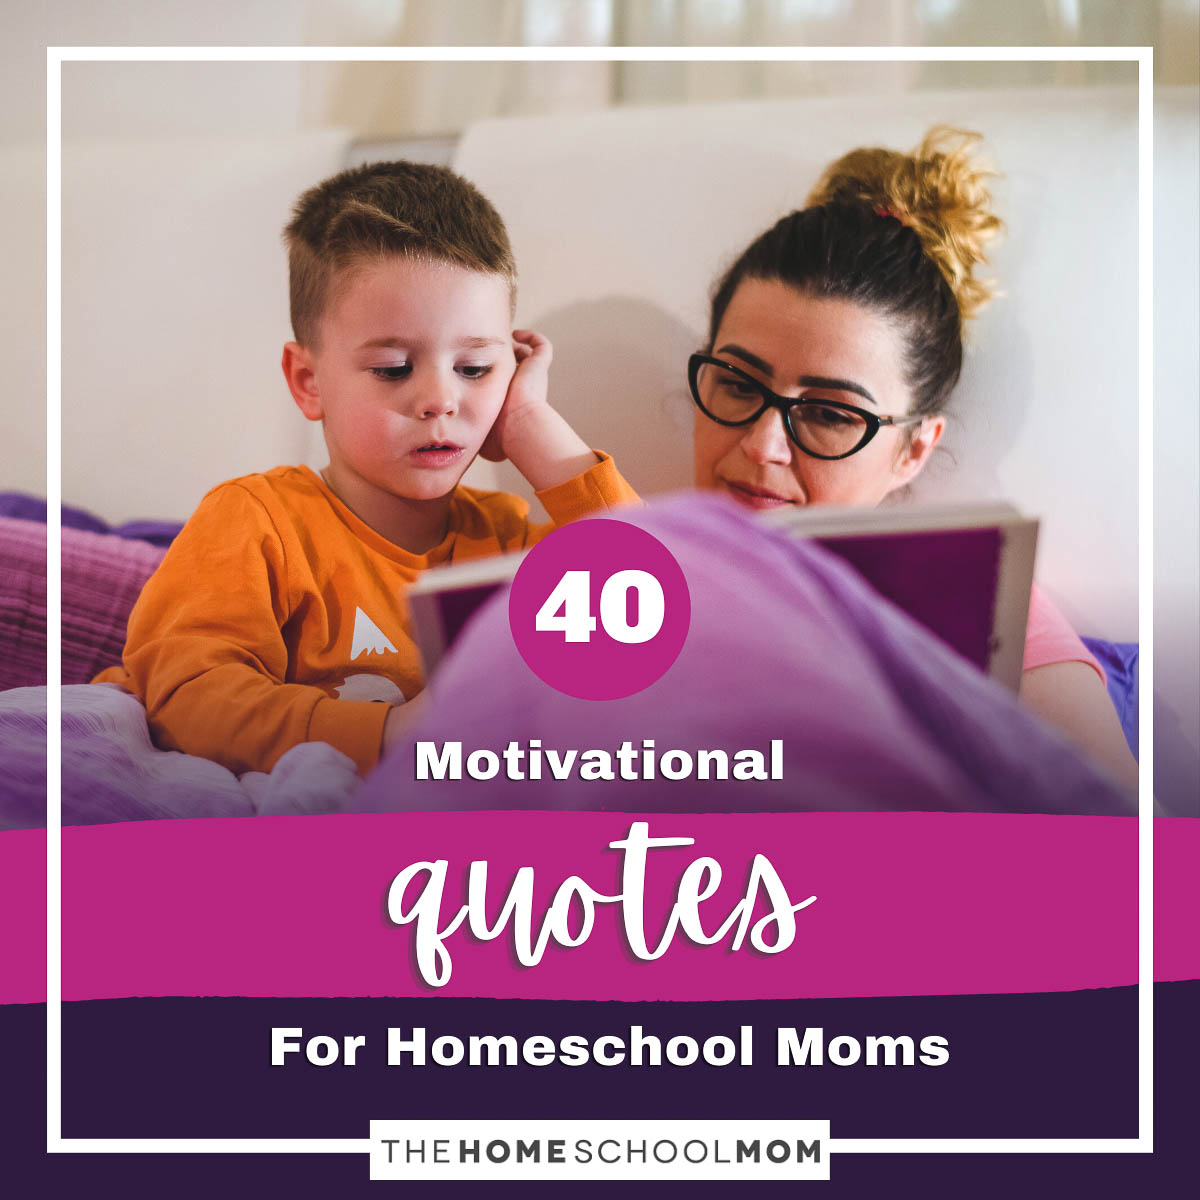 40 Motivational Quotes For Homeschool Moms